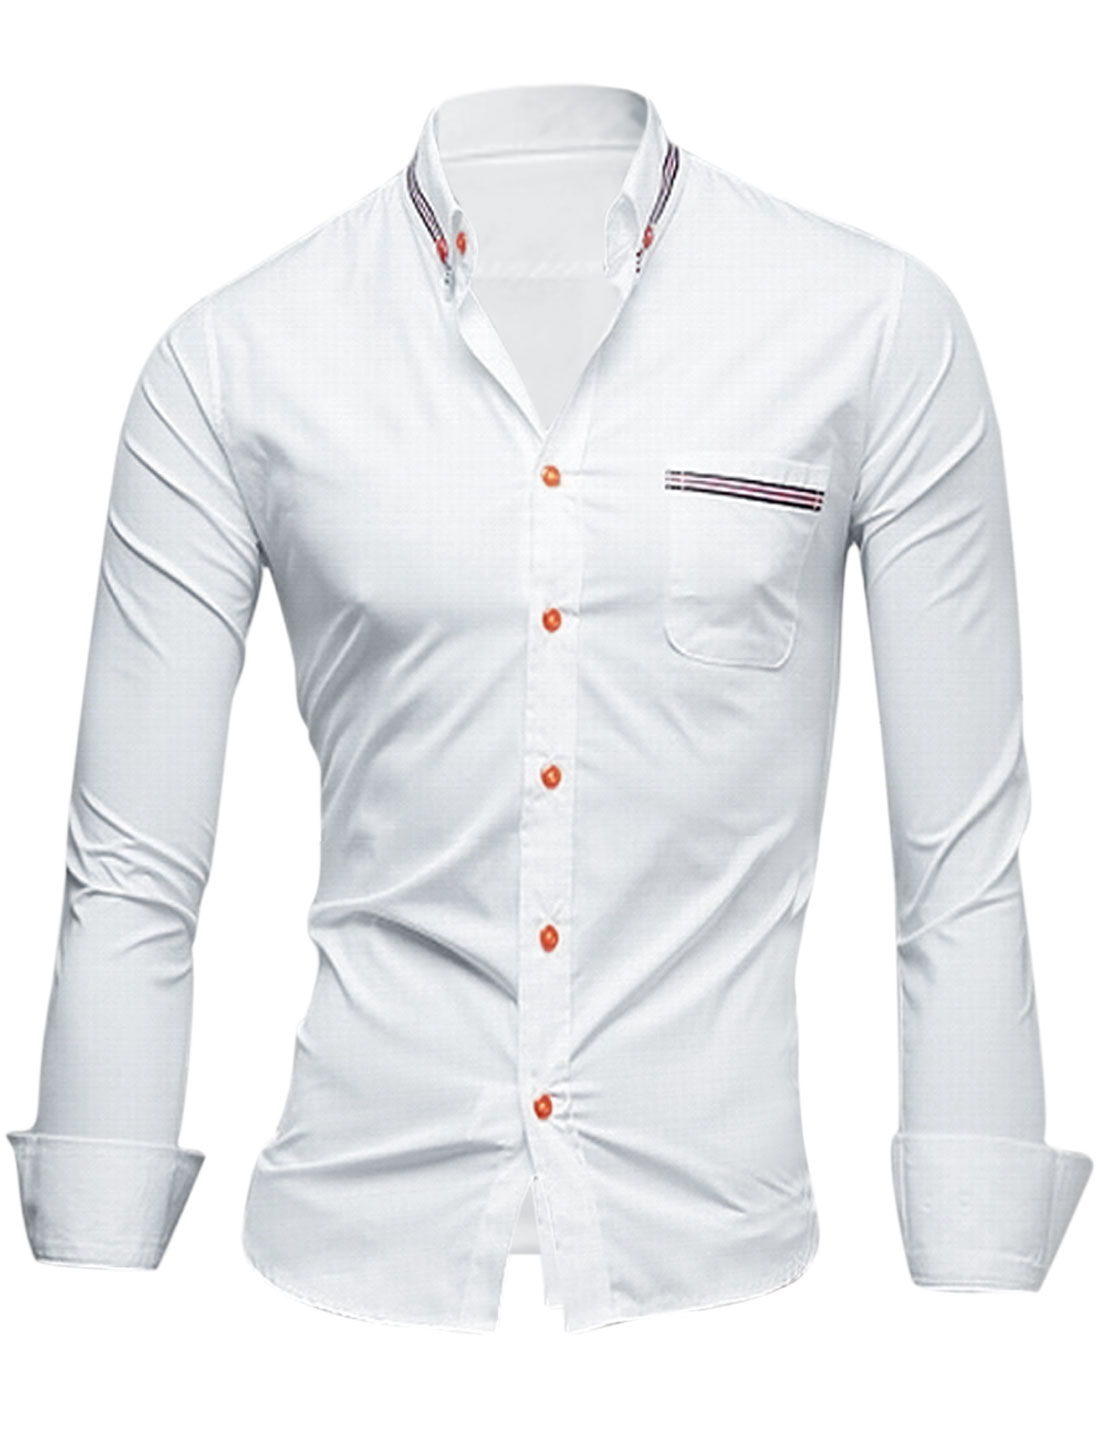 Leisure Convertible Collar Single Breasted Cozy Fit Shirt for Men White M